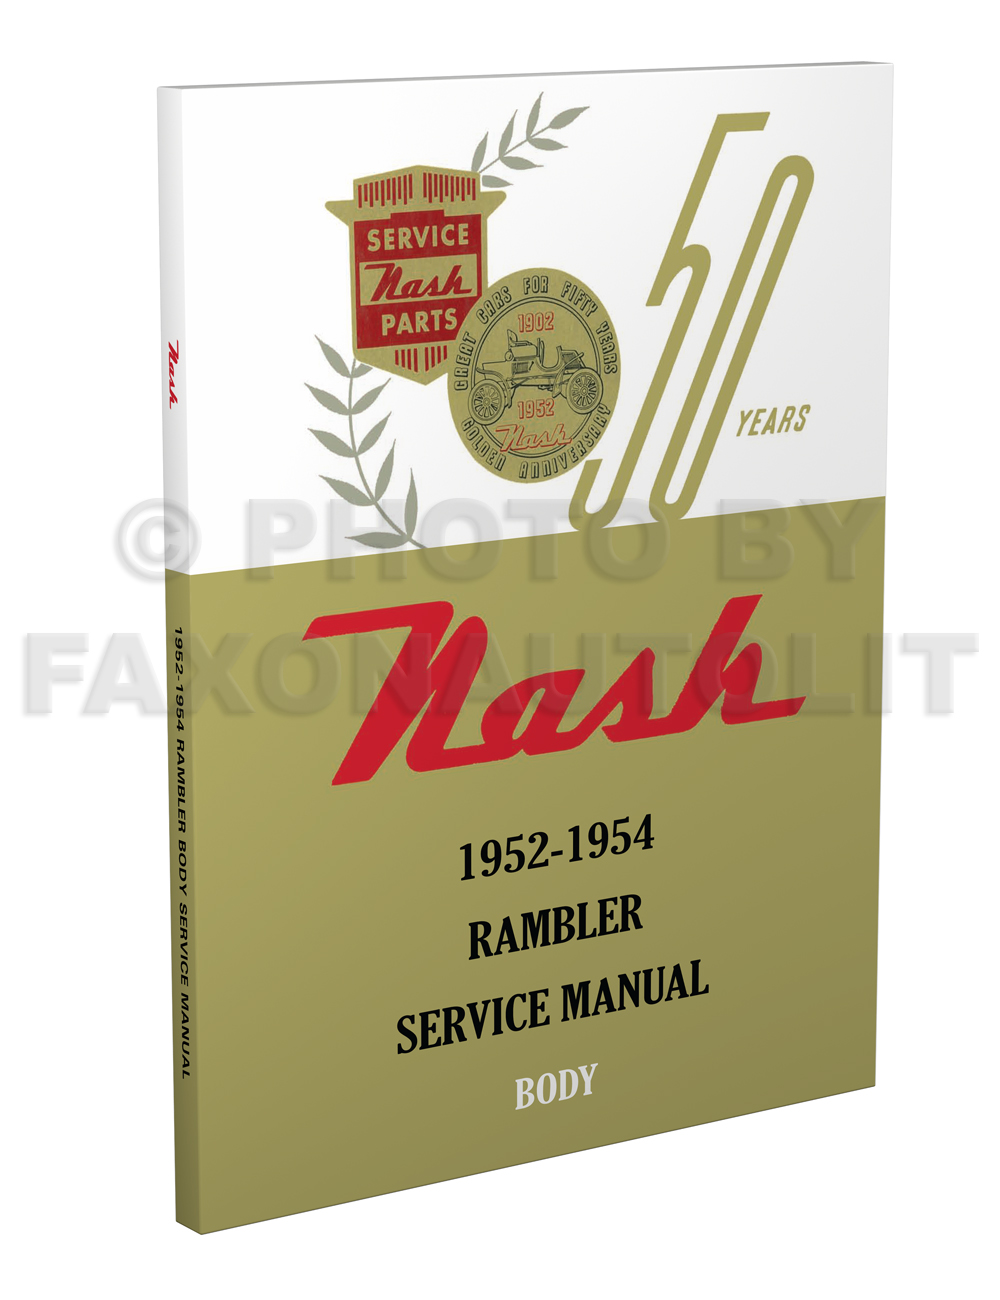 1952-1954 Nash Body Manual Reprint Rambler